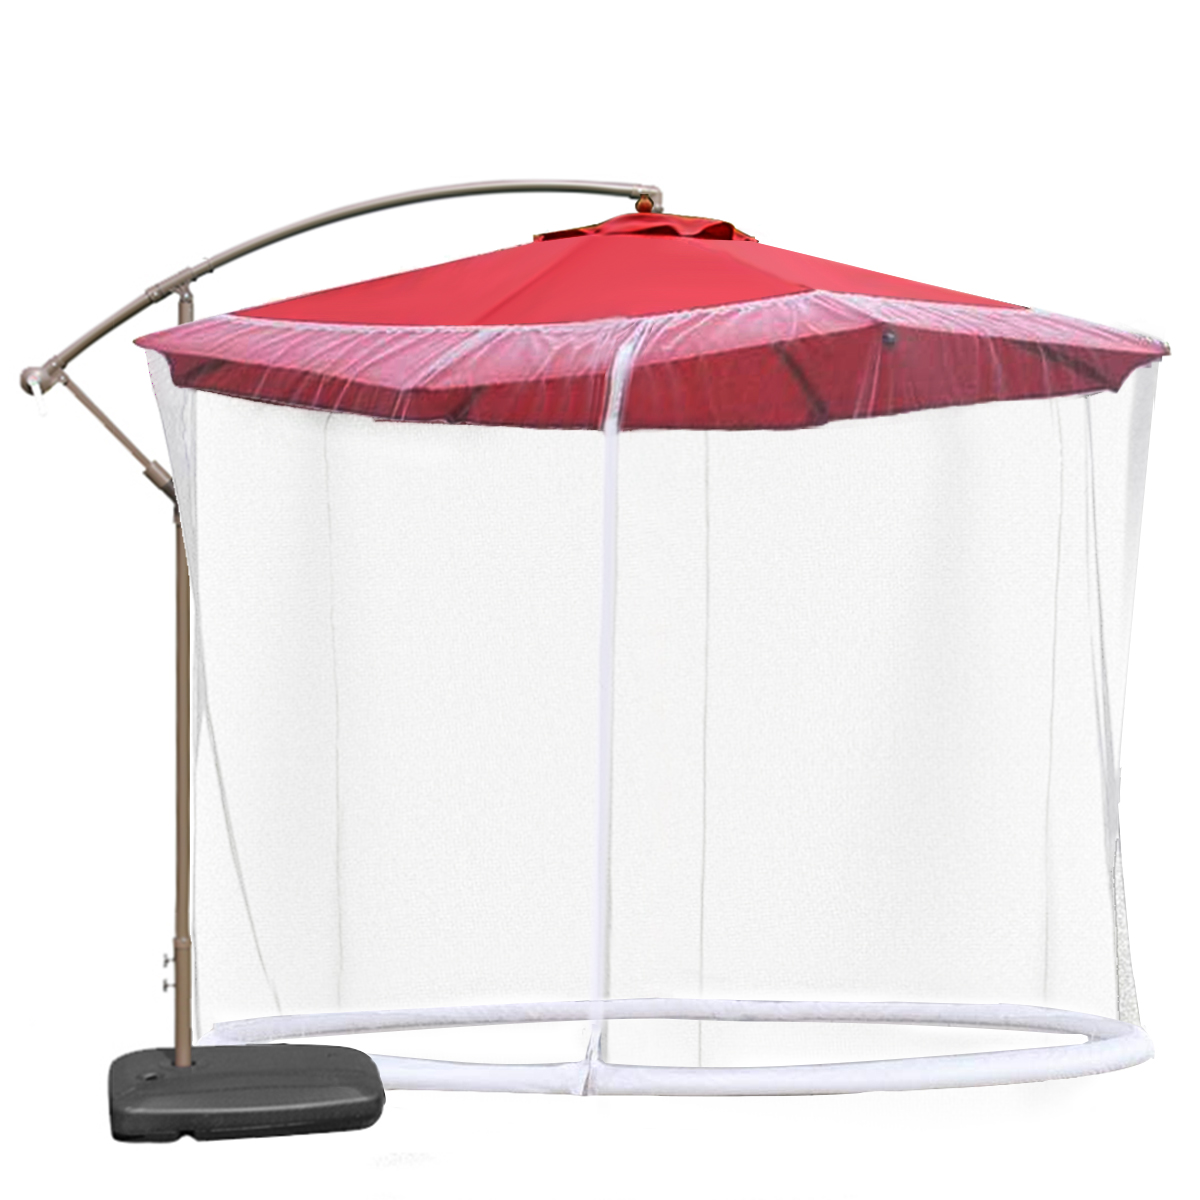 outdoor 9ft patio curved arm umbrella bug screen w zipper door and polyester netting anti mosquito net cover black white